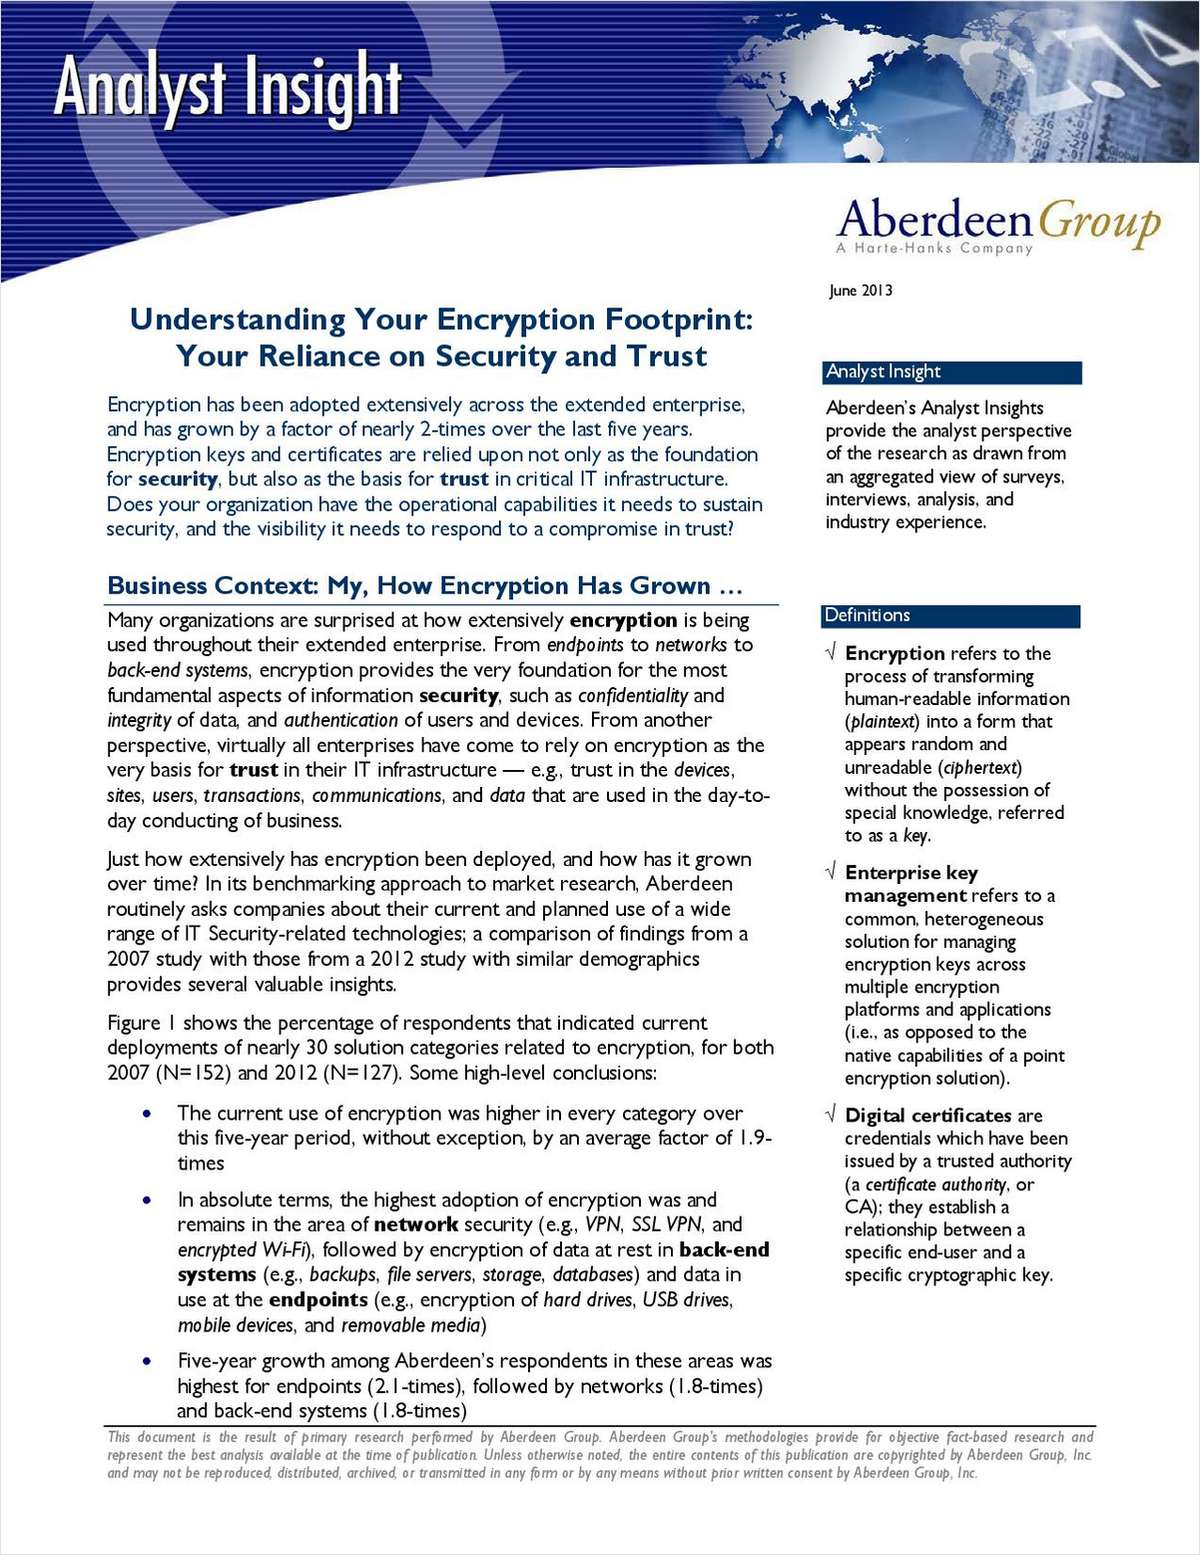 Understanding Your Encryption Footprint: Your Reliance on Security and Trust